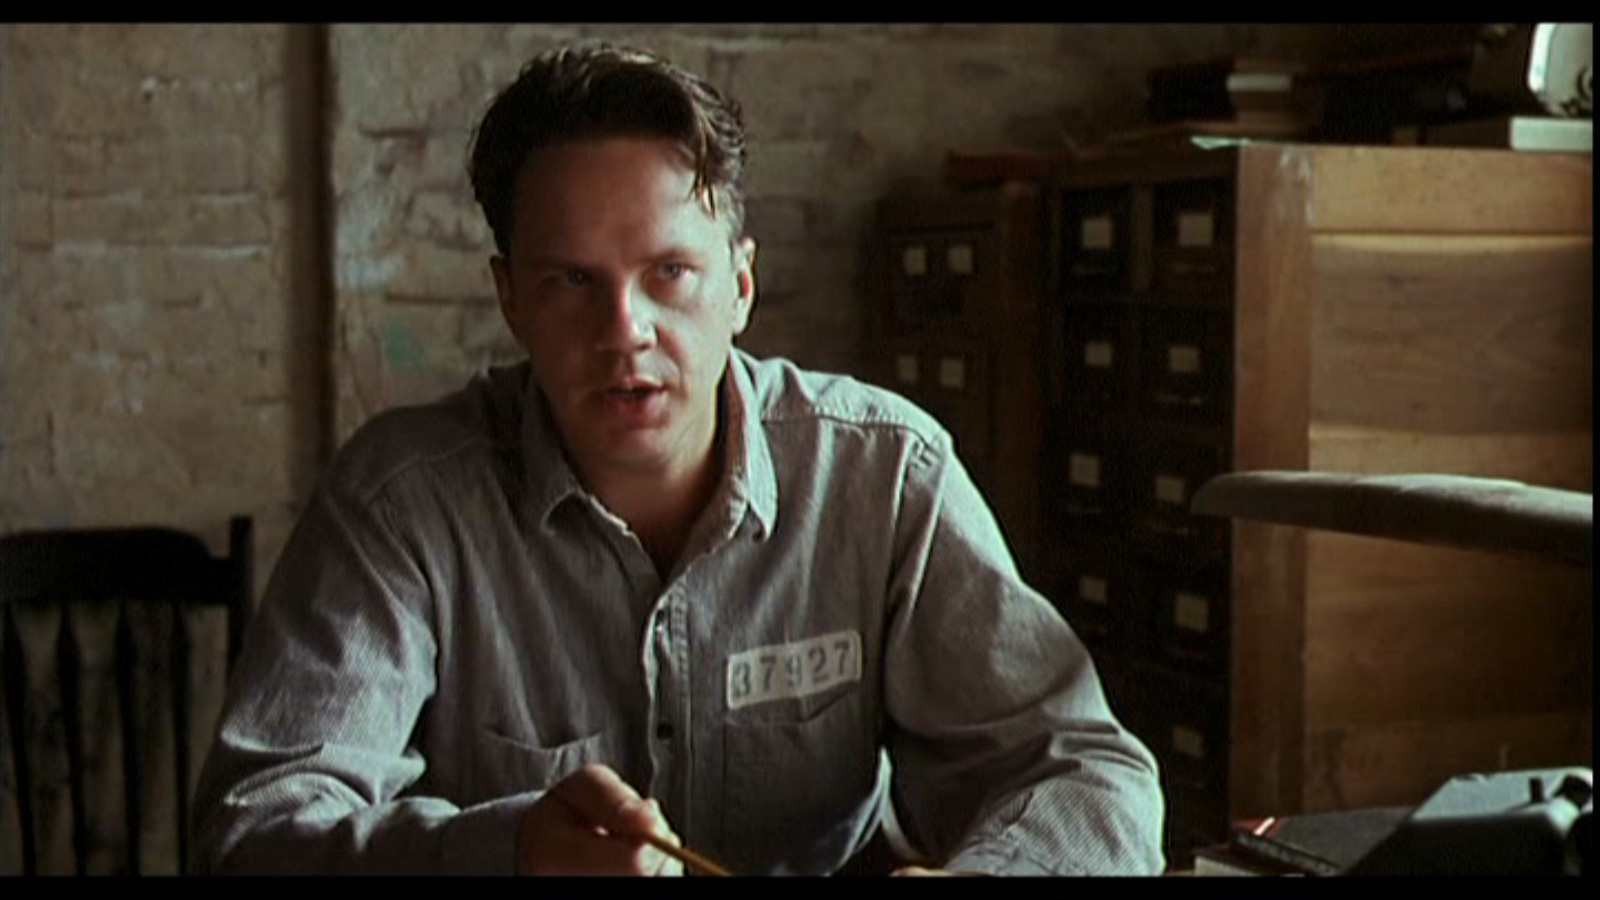 shawshank redemption It's been 21 years since andy dufresne crawled through a river of s--- and came out clean on the other side wednesday marked the anniversary of the theater debut of the shawshank redemption.